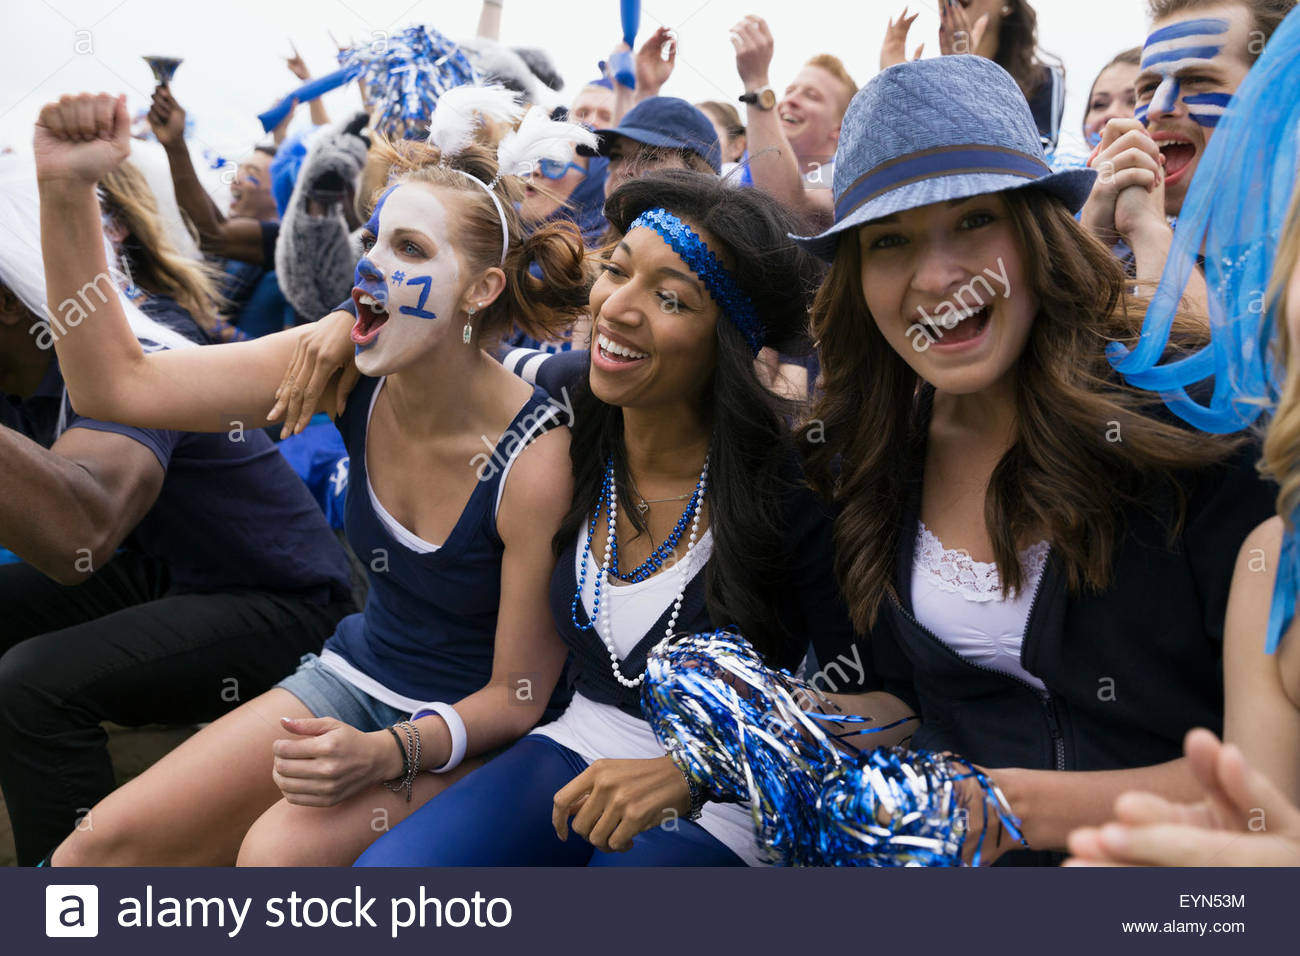 Enthusiastic fans in blue cheering bleachers sports event - Stock Image